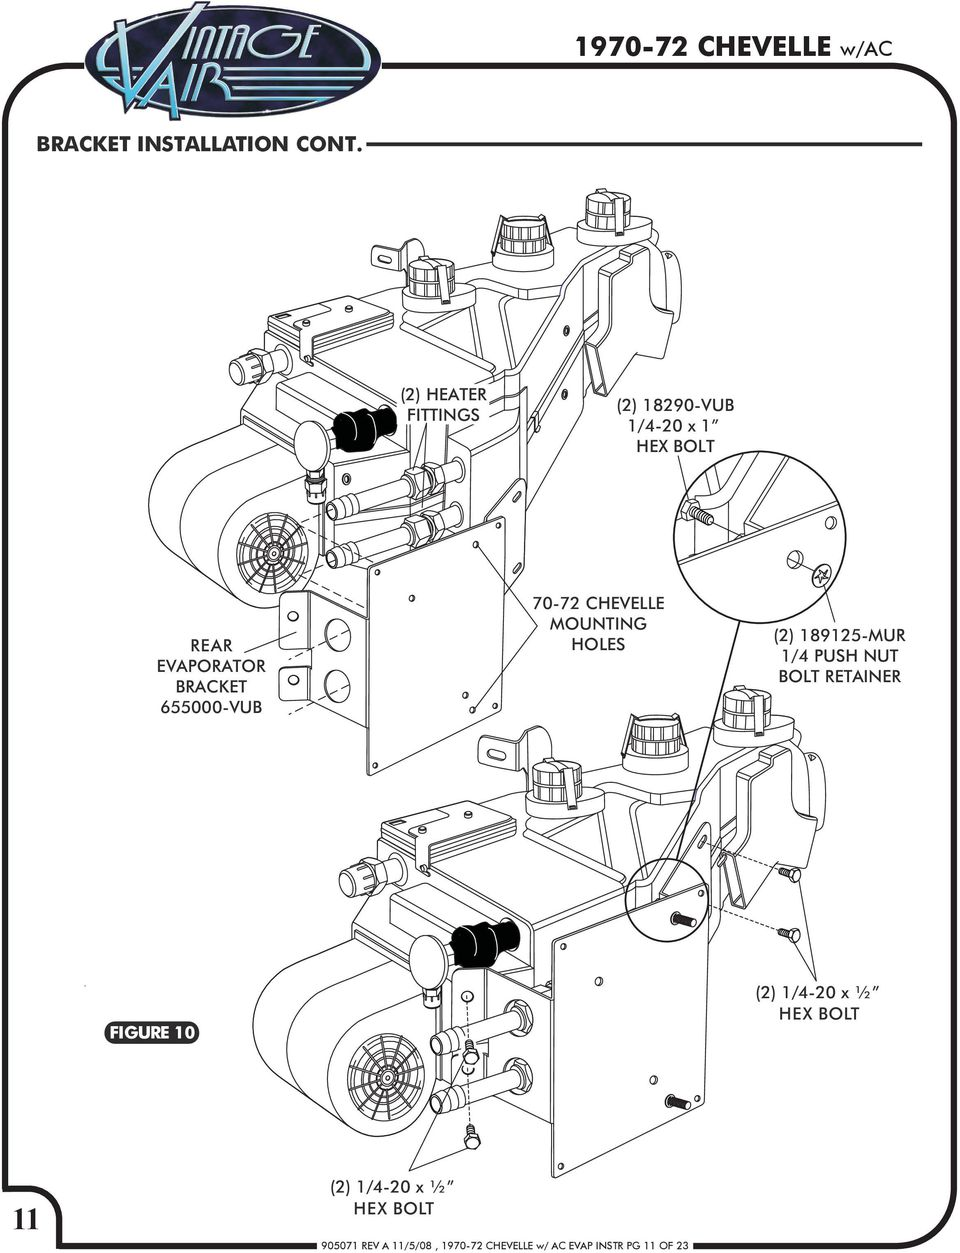 Chevelle W Factory Air Rev A 11 5 08 Ac Evap Instr Pg Detailed C Compressor Bracketry Installation Diagram 655000 Vub 70 72 Mounting Holes 2 189125 Mur 1